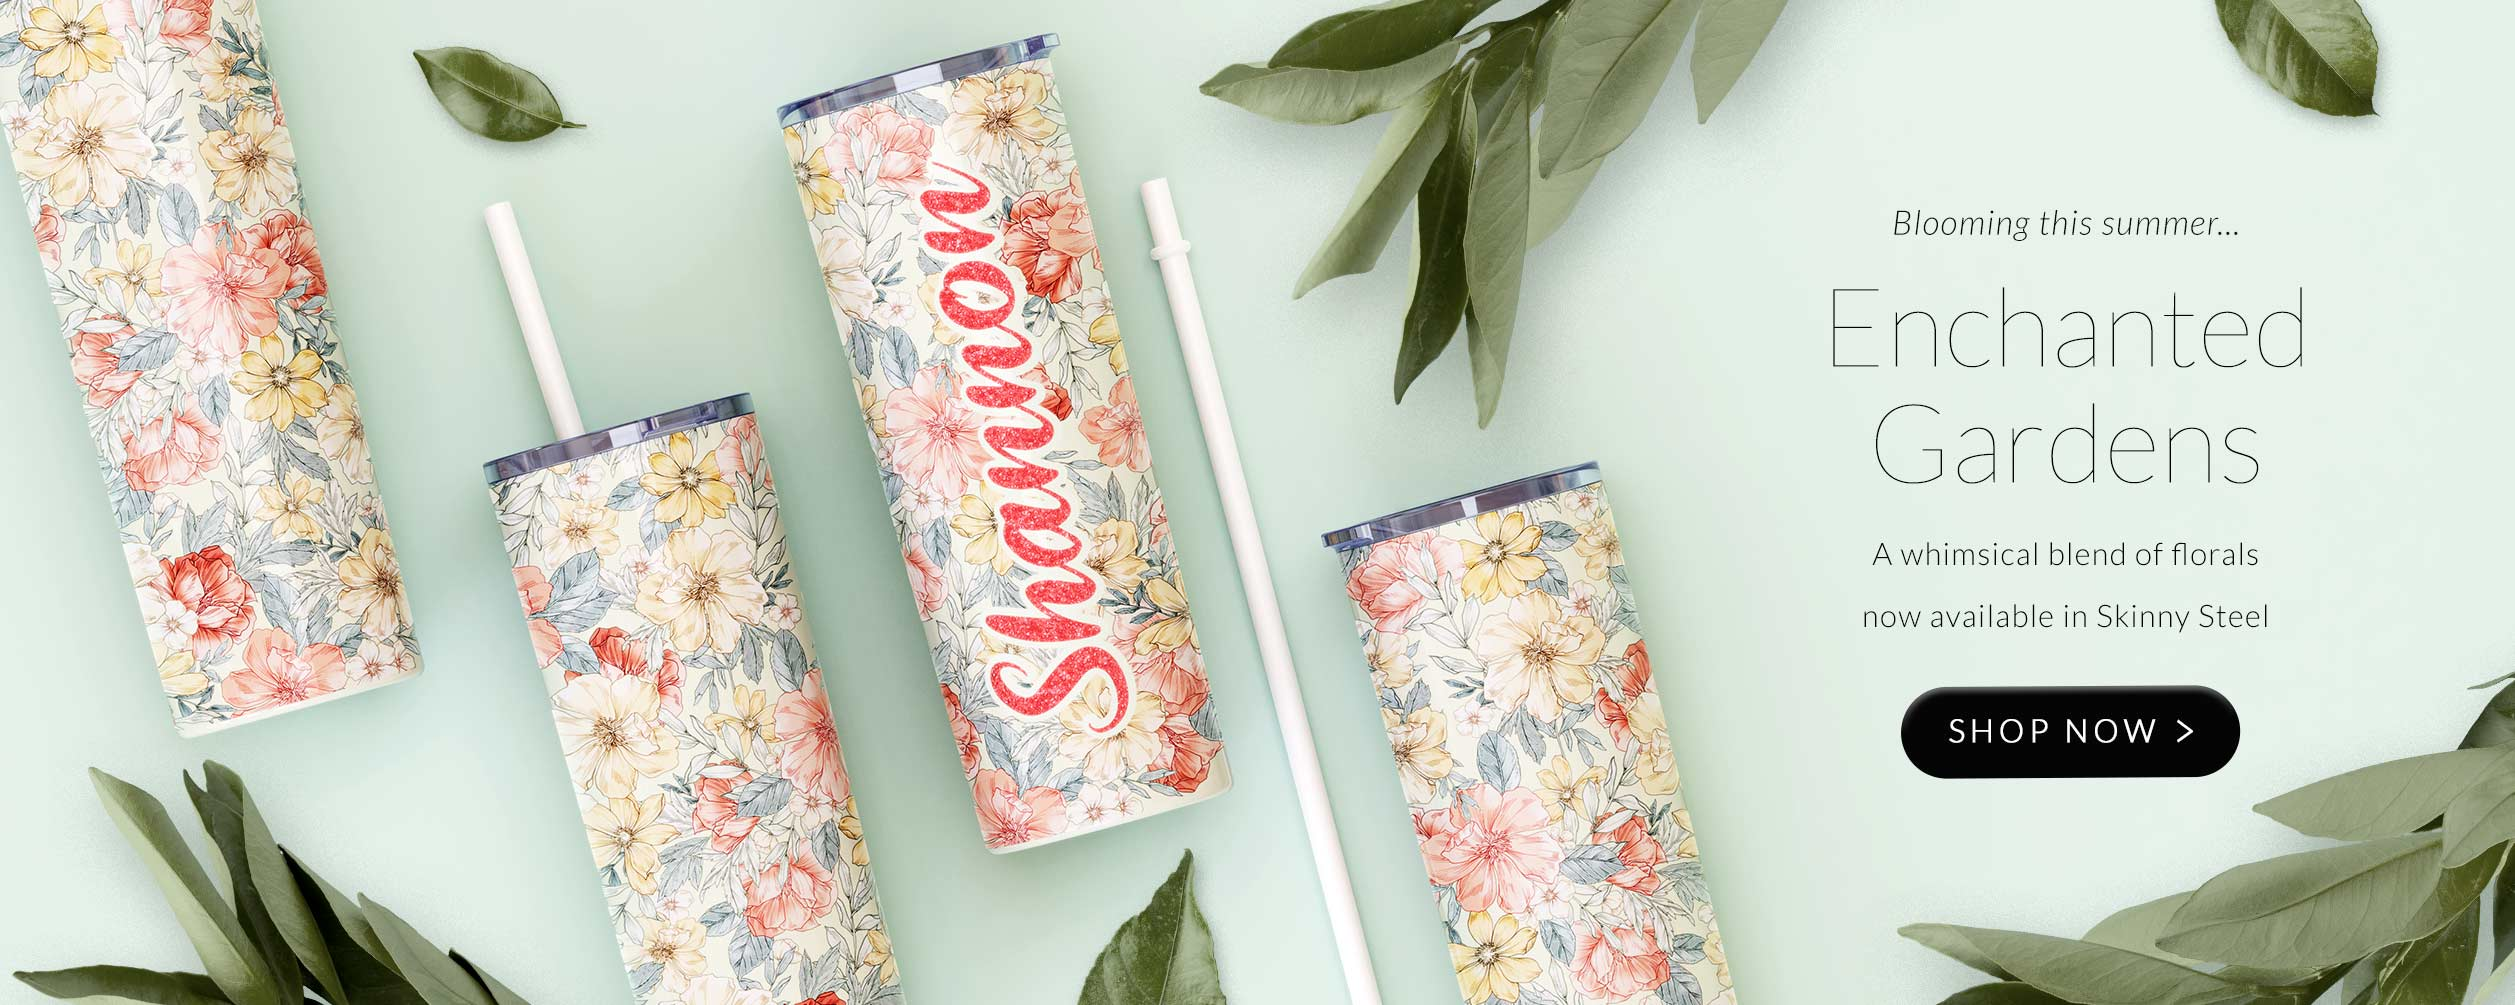 Launch page for our new Skinny Steel pattern Enchanted Gardens - whimsical blend of soft floral in an array of pastel shades.